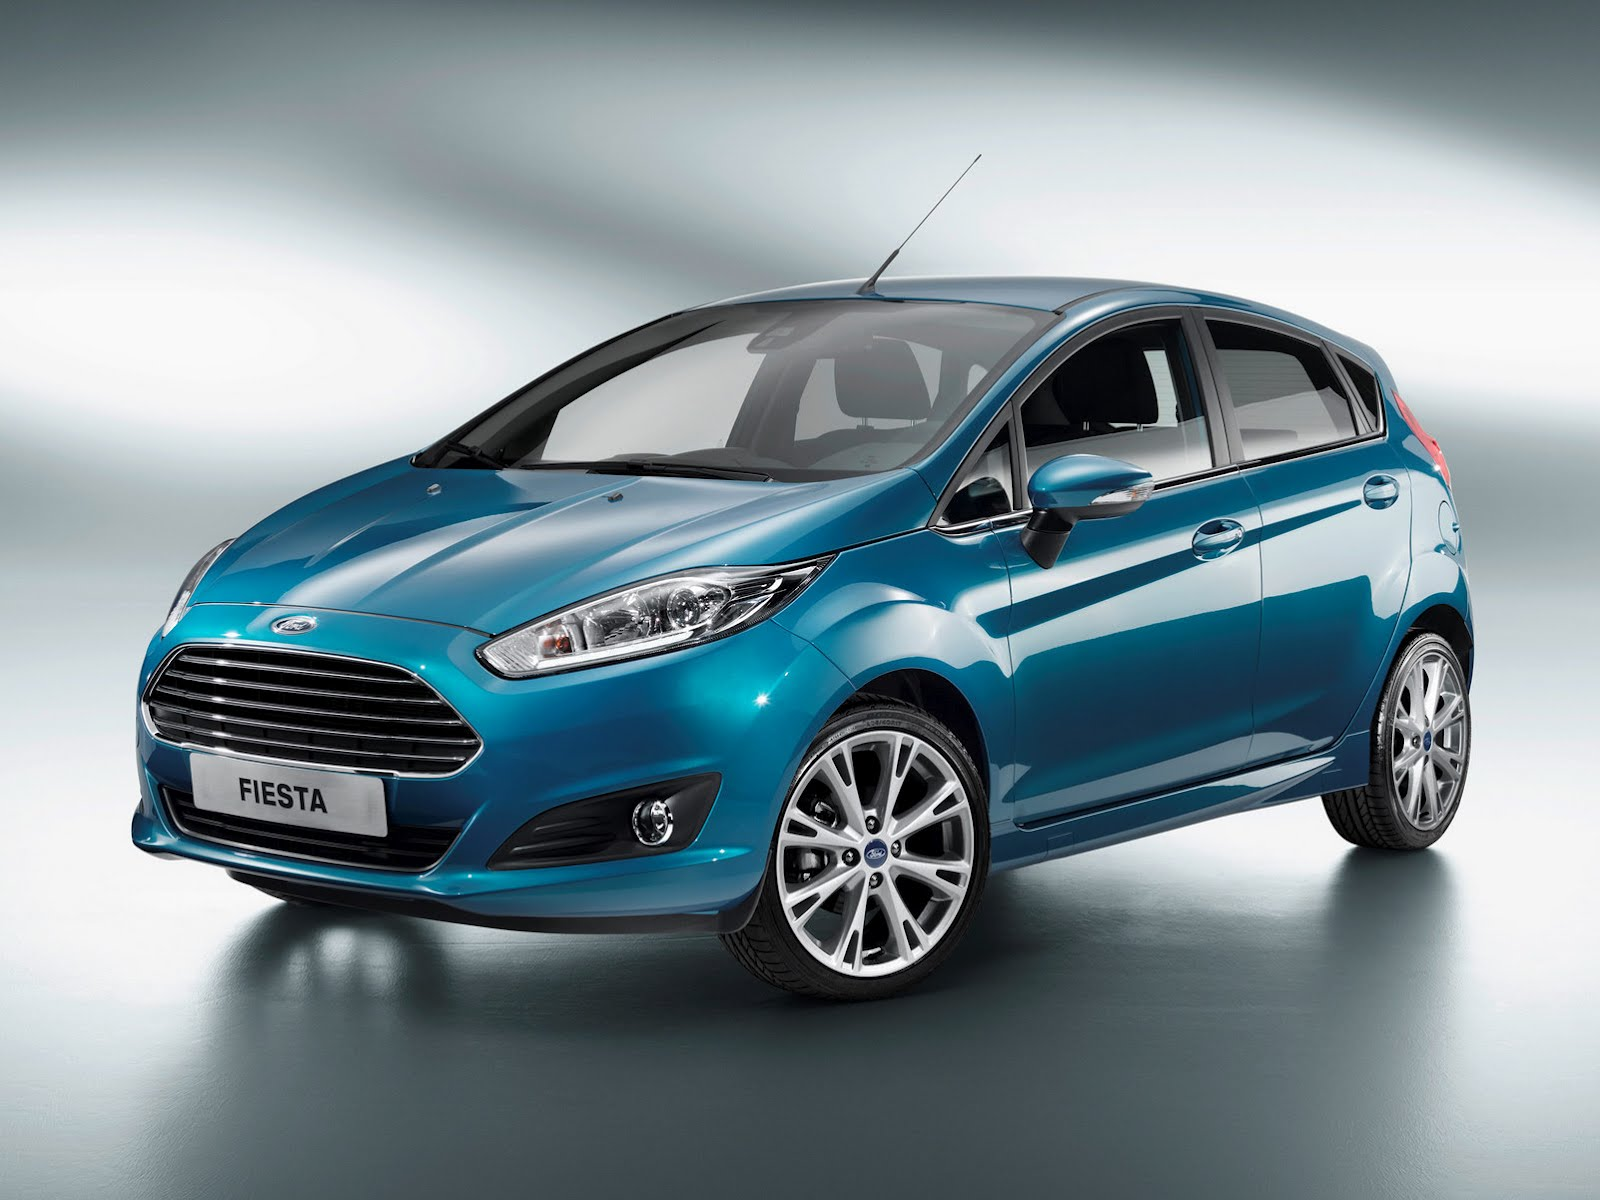 2014 Ford Fiesta Facelift to Get 1.0-liter EcoBoost Turbo in US - Photo Gallery - photo gallery